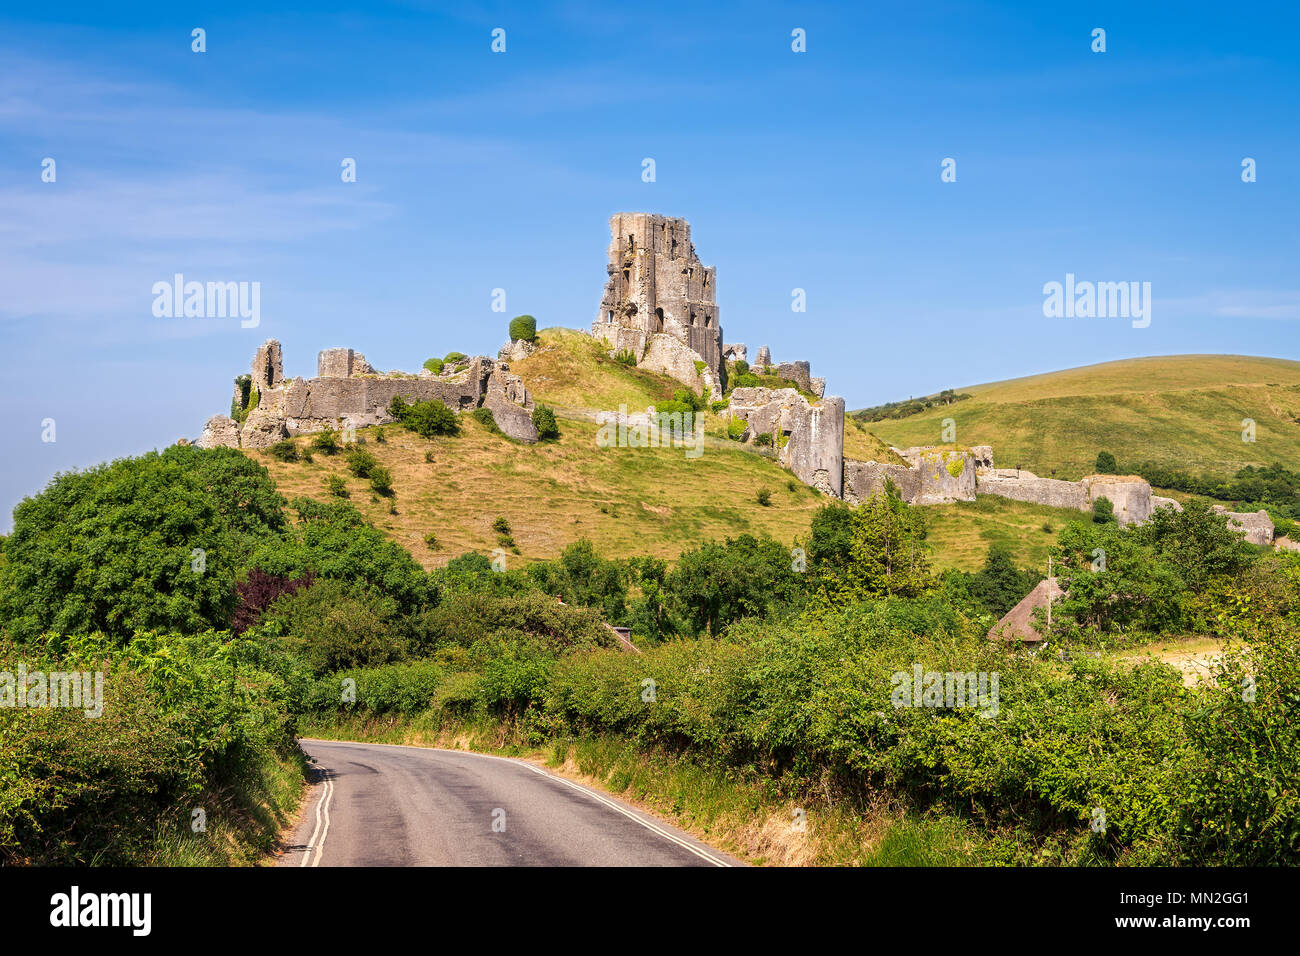 Wareham, United Kingdom - June 20, 2017: Ruins of Corfe Castle, built in medieval times by William the  Conqueror in the Isle of Purbeck in Dorset, vi - Stock Image